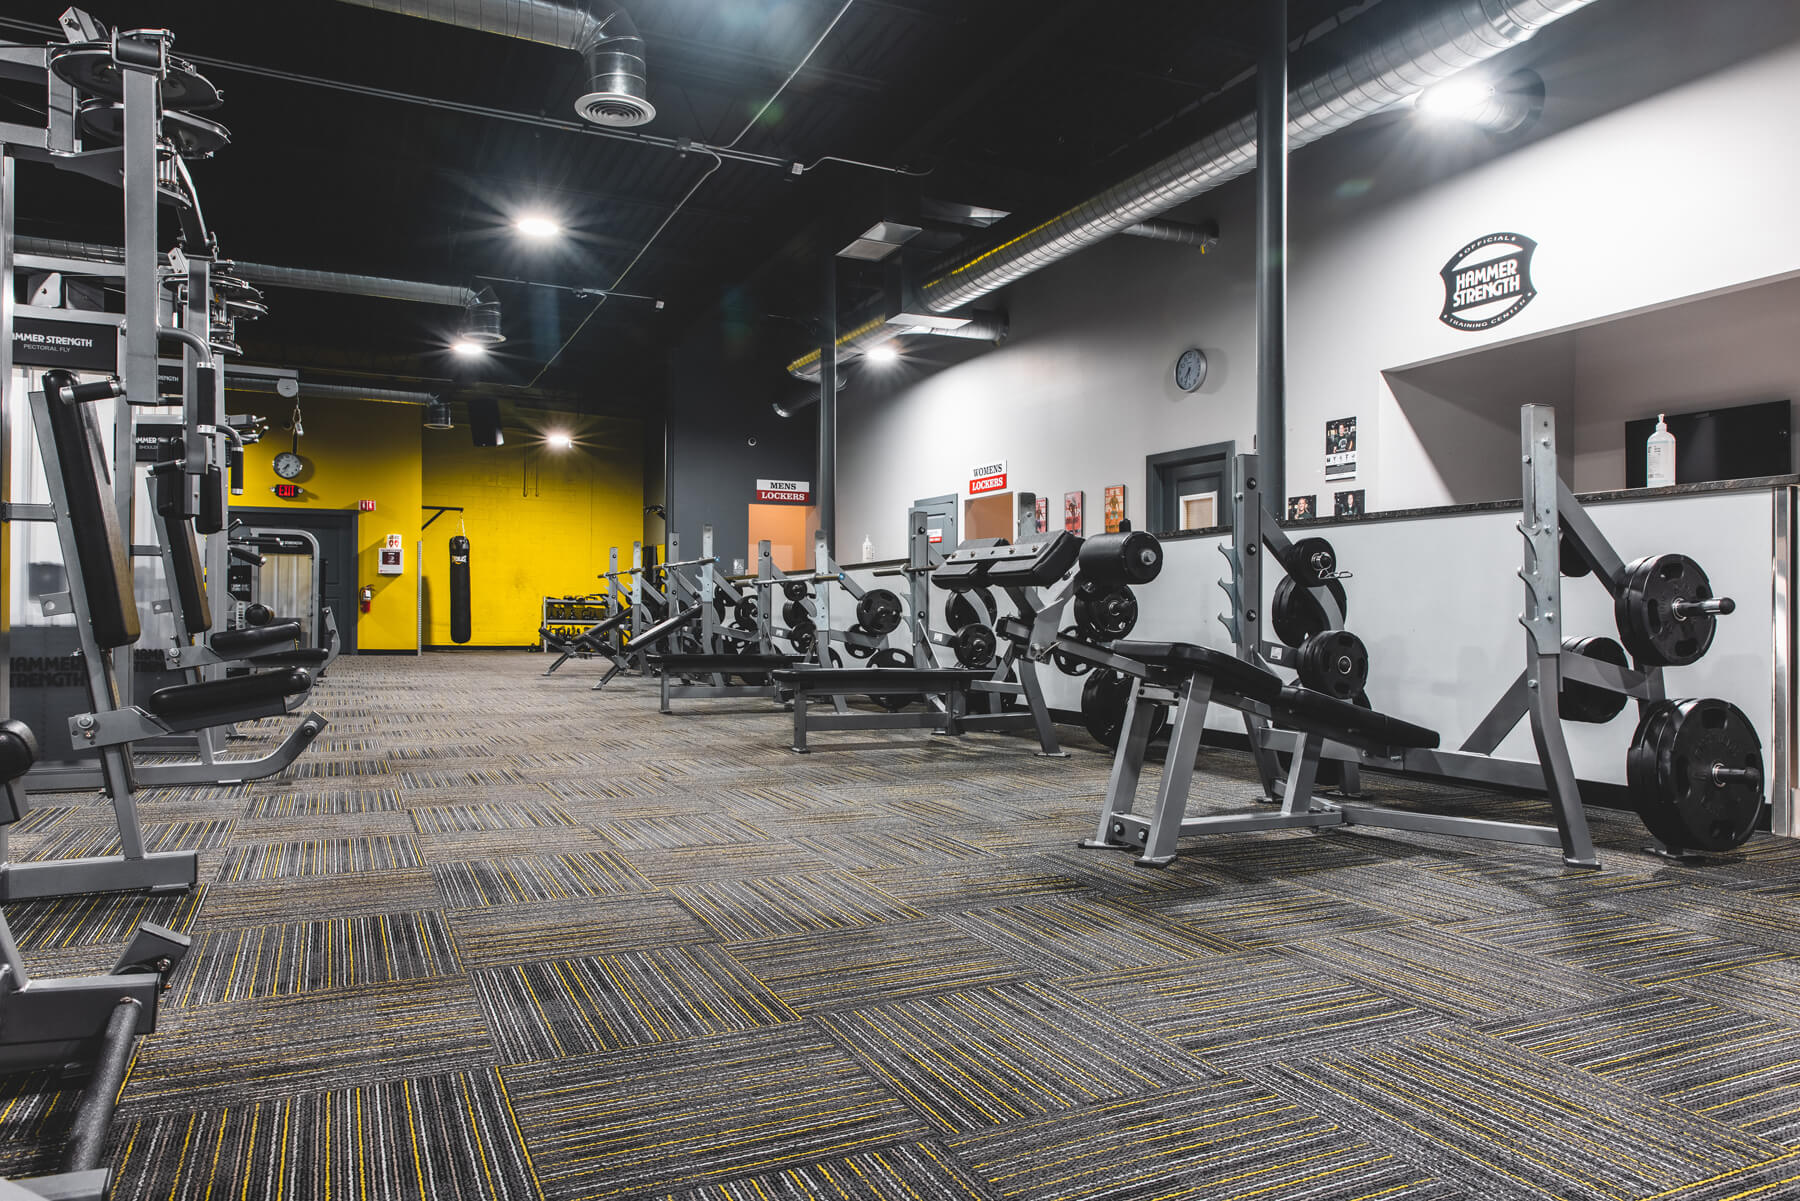 An Image of the Milford, MI Powerhouse Gym Location